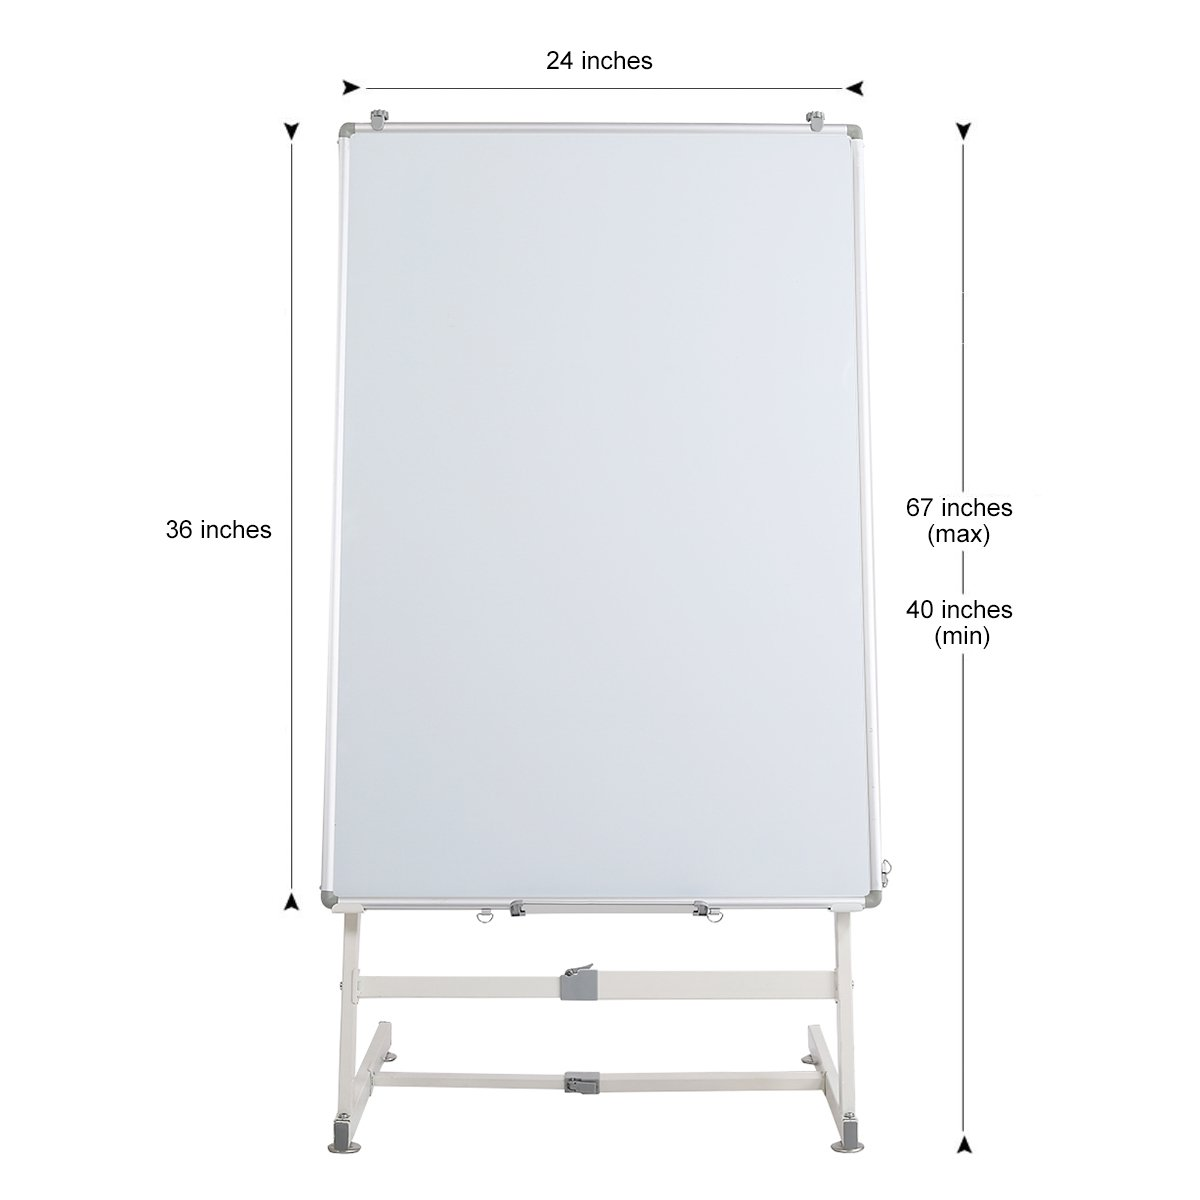 ZHIDIAN Magnetic whiteboard 24X36 Inch Dry Erase Board mobile easel stand /4 markers and 1 eraser 8 Magnets